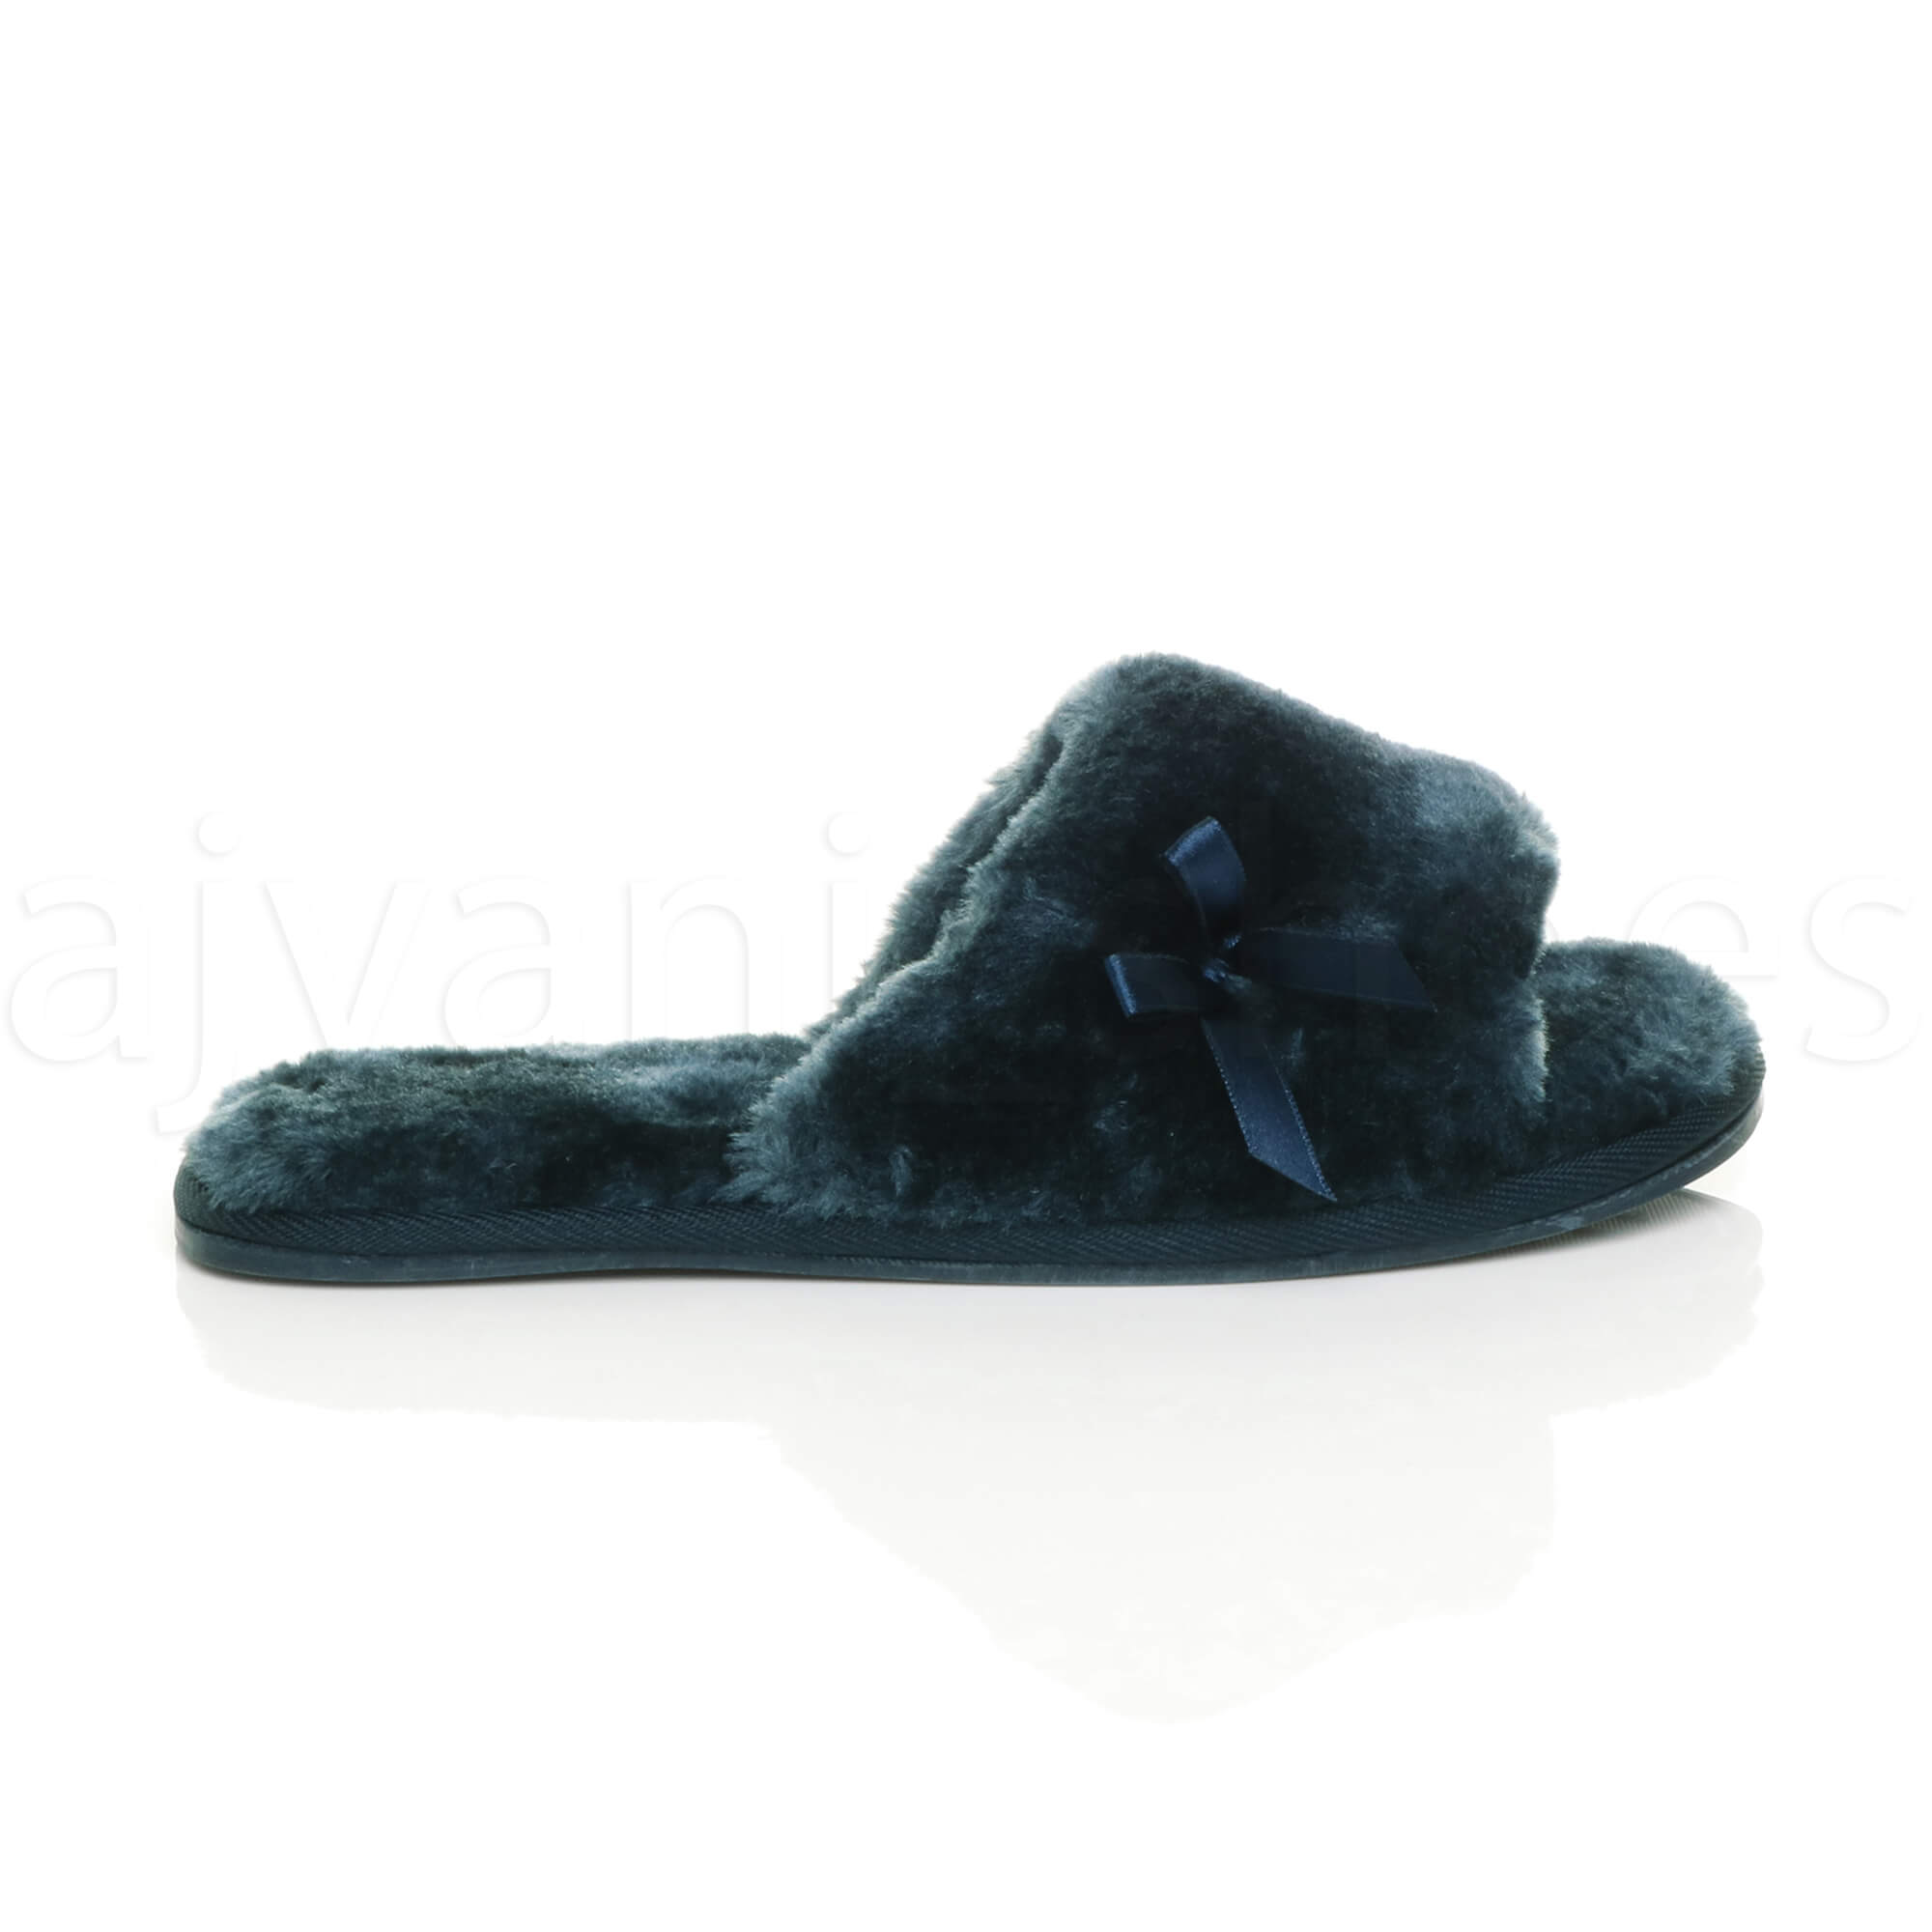 WOMENS-LADIES-FLAT-PEEP-TOE-BOW-LUXURY-COSY-FUR-LINED-SLIP-ON-SLIPPERS-SIZE thumbnail 43